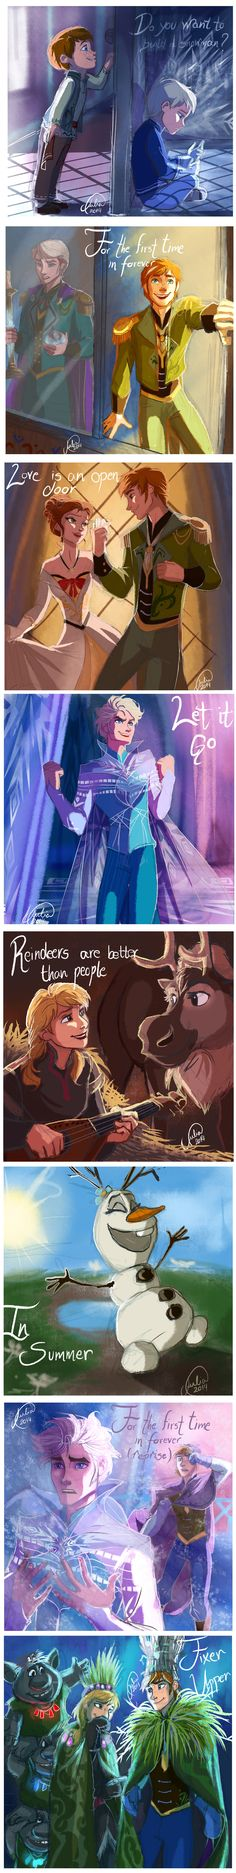 Frozen gender bent